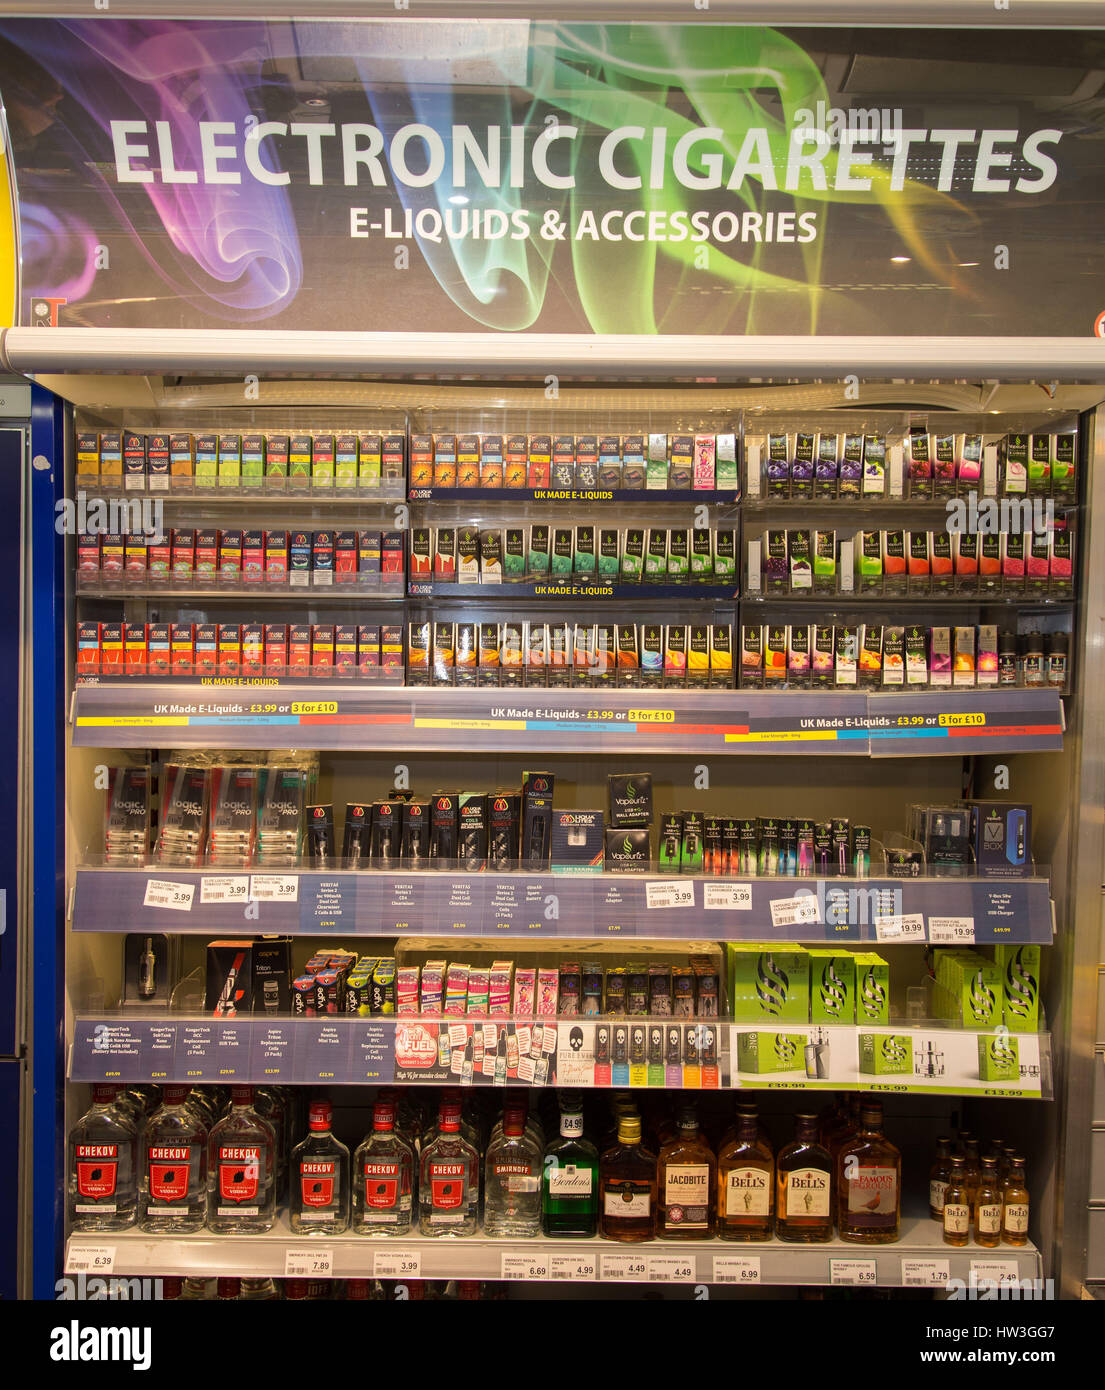 Electronic cigarettes for vaping and spirits vodka, gin, whisky, brandy in a shop display cabinet. - Stock Image